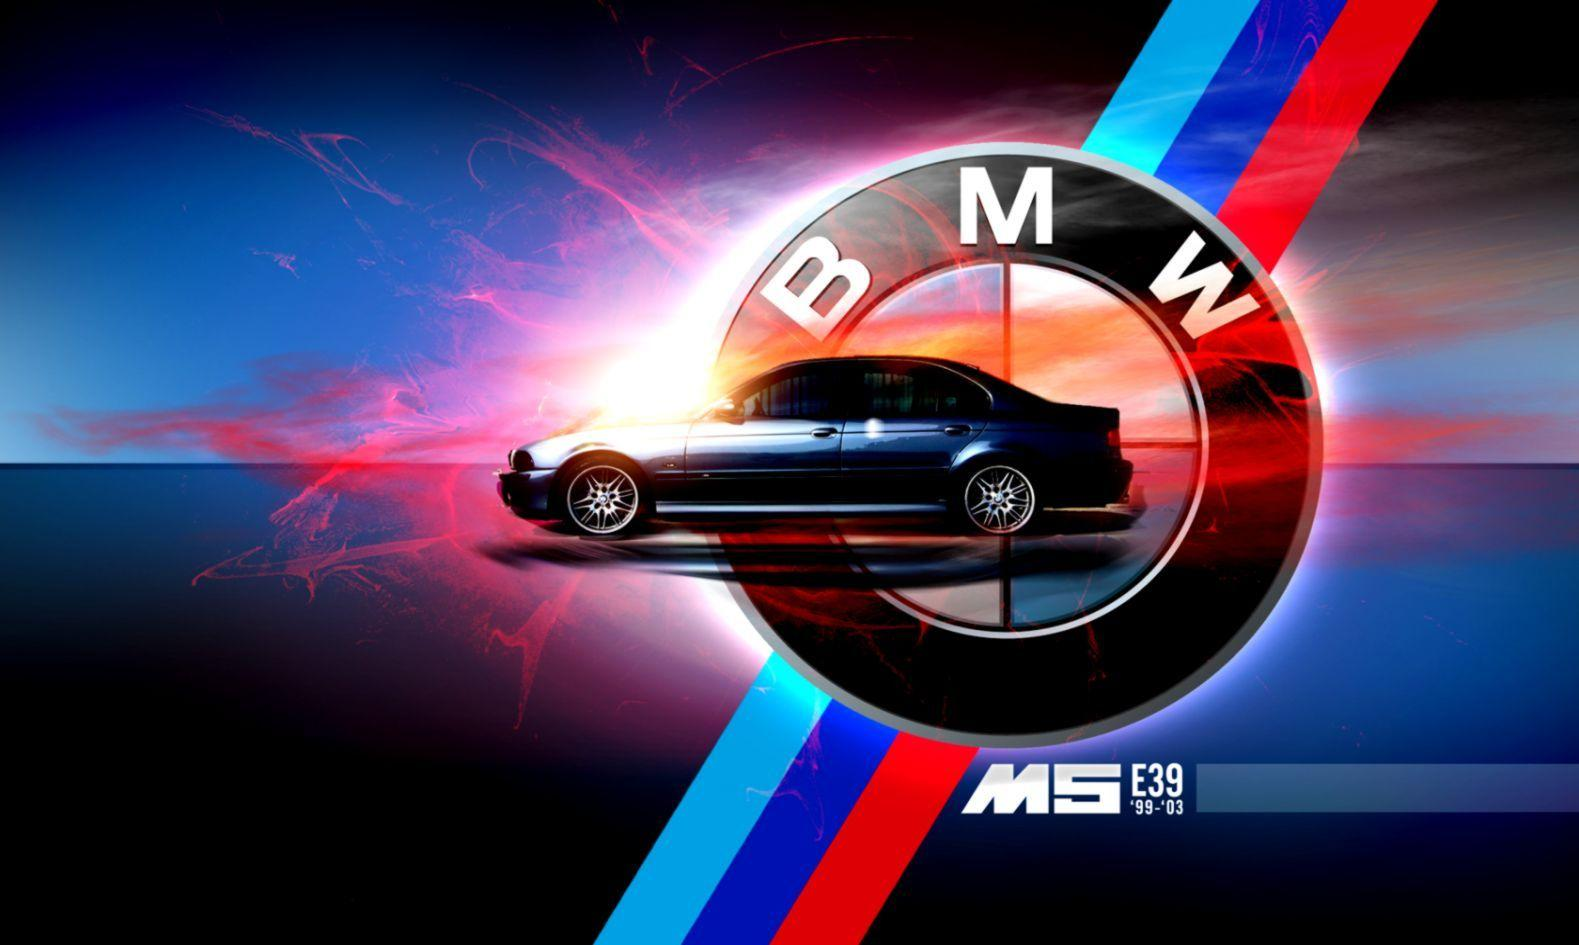 BMW M HD Wallpapers 1579x945 px,